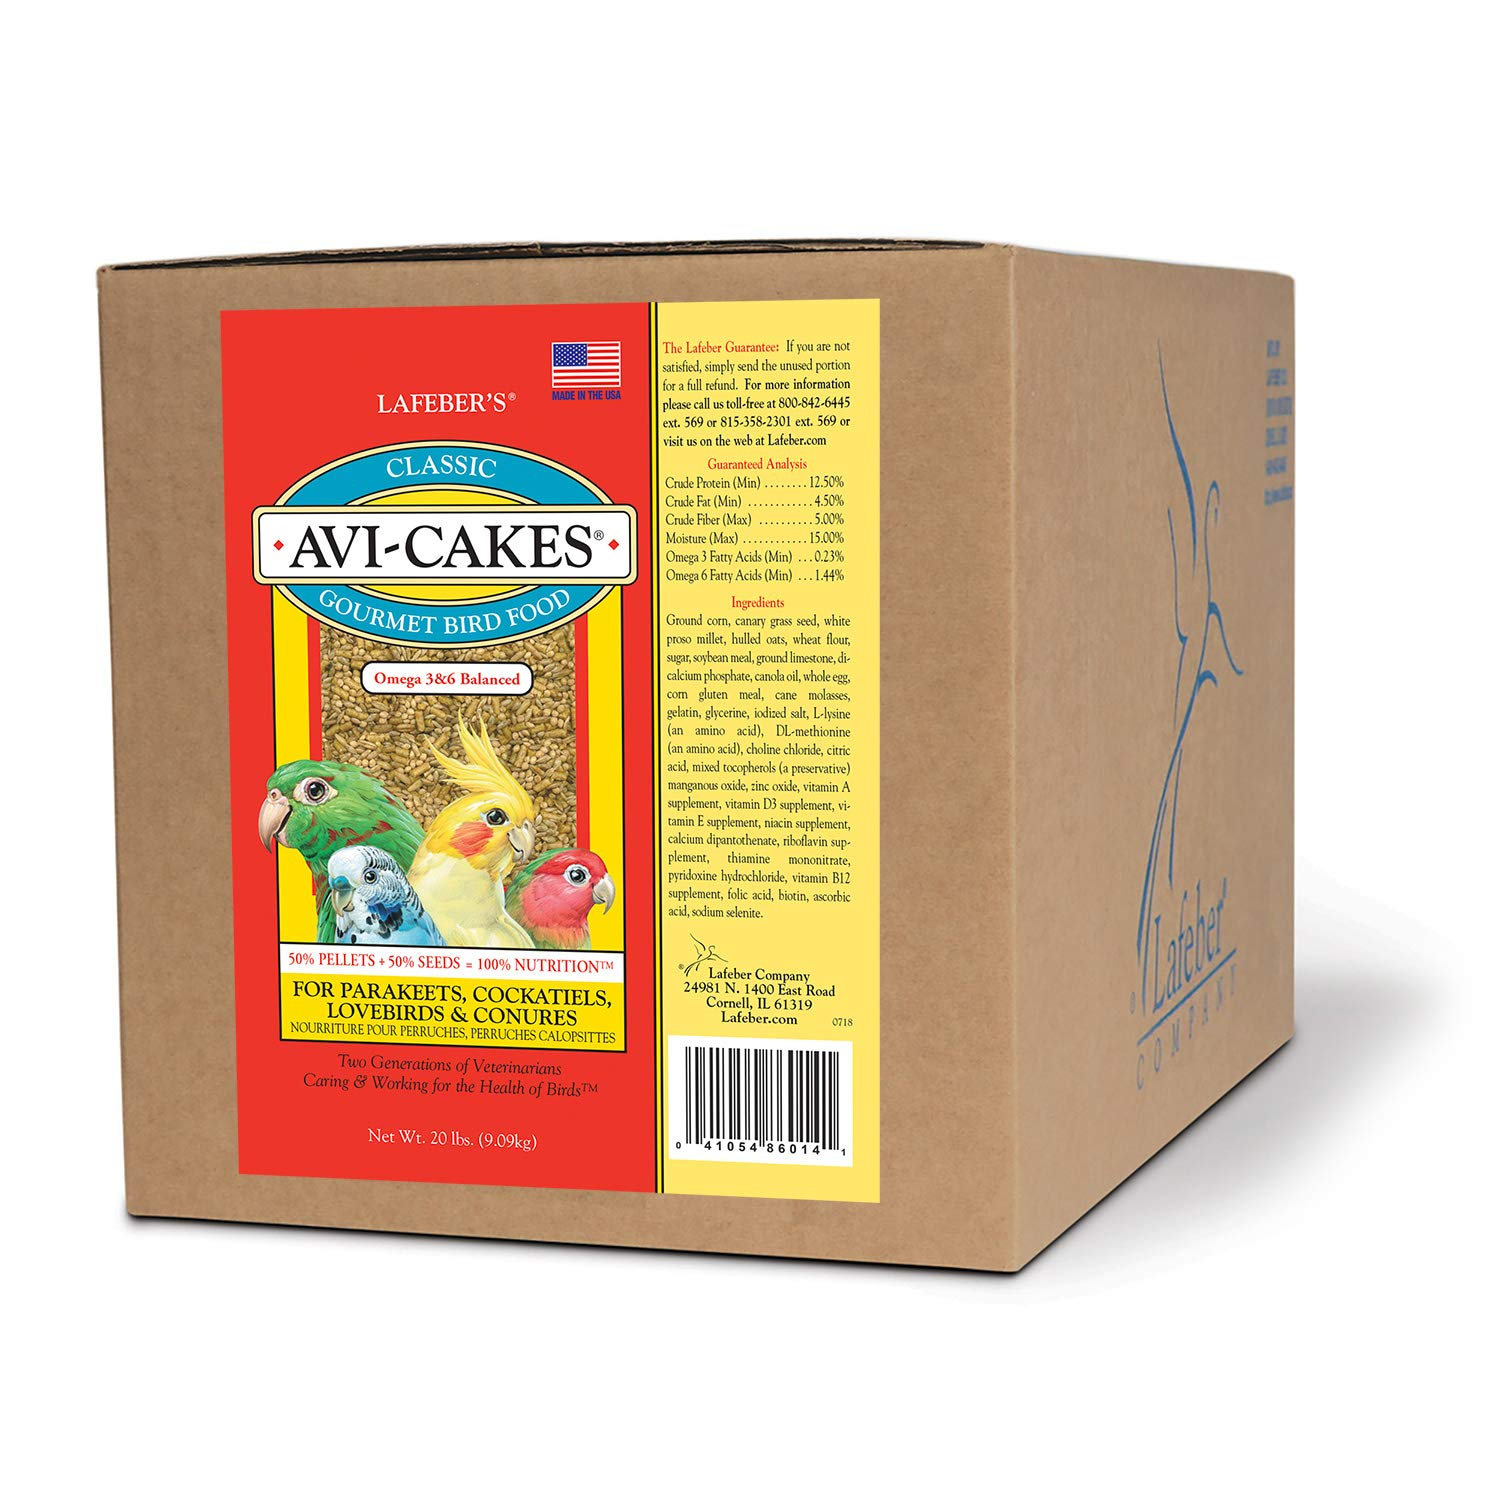 LAFEBER'S Classic Avi-Cakes Pet Bird Food, Made with Non-GMO and Human-Grade Ingredients, for Cockatiels Conures Parakeets (Budgies) Lovebirds, 20 lb by LAFEBER'S